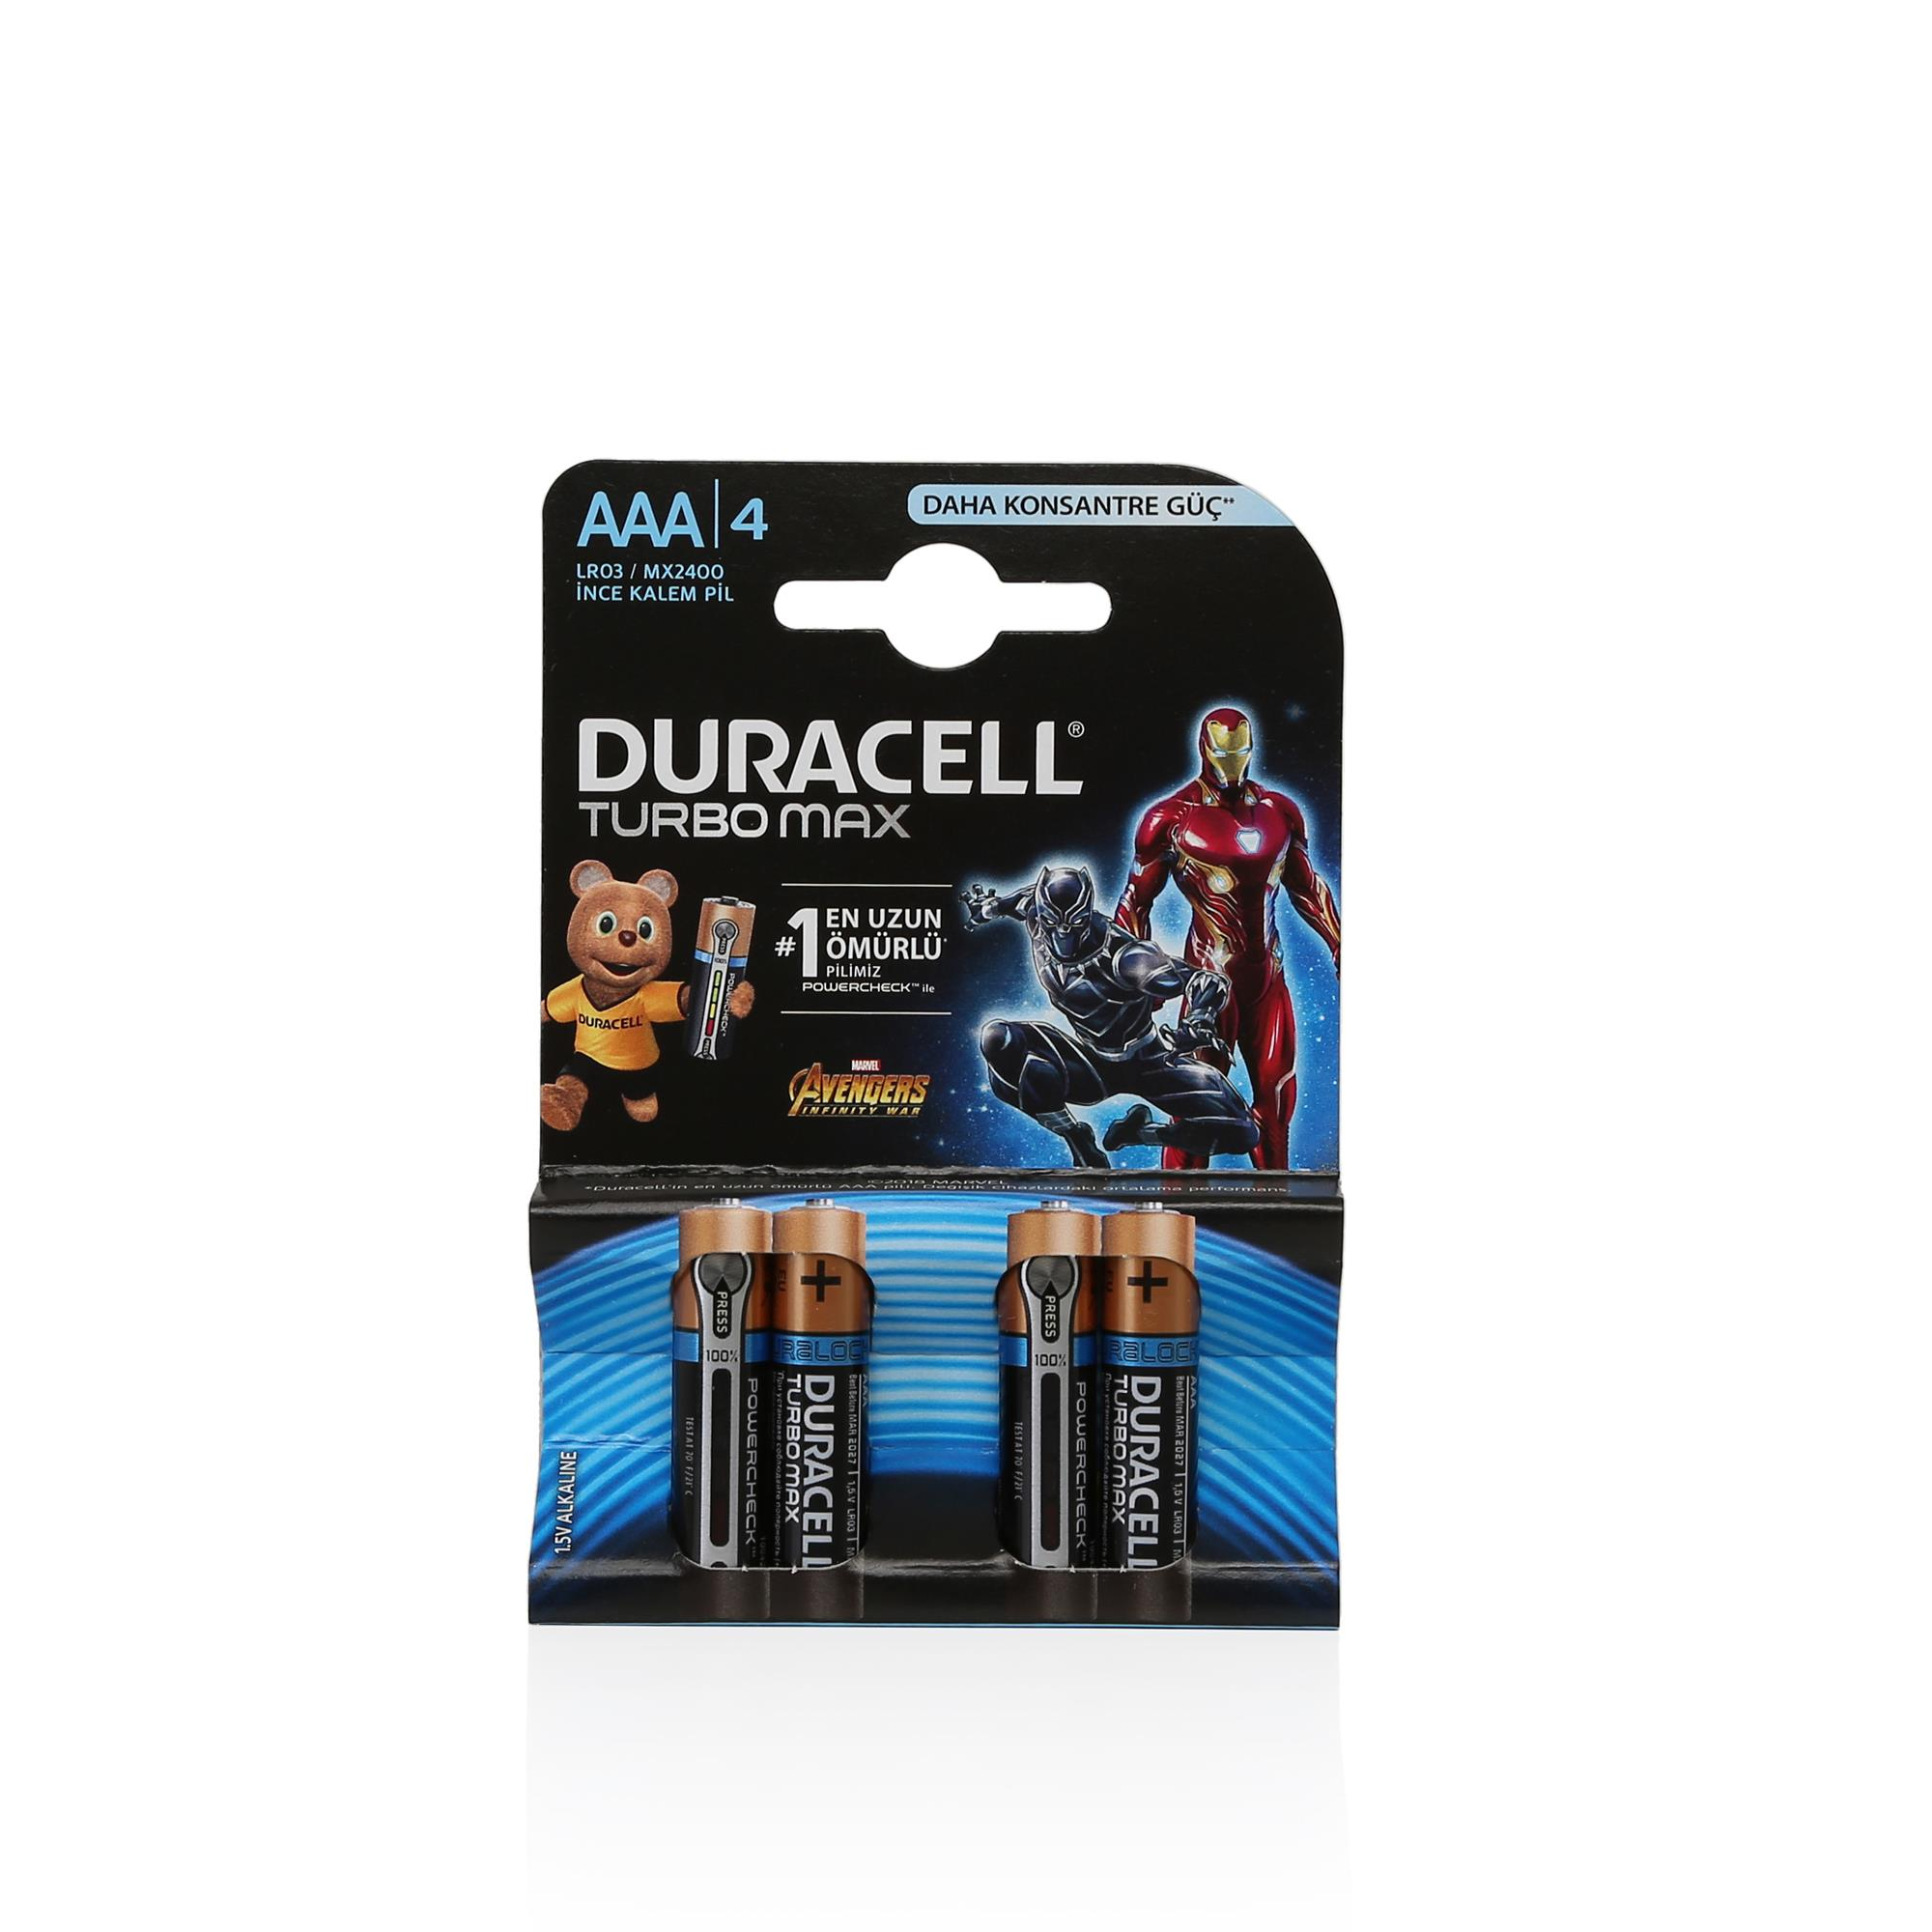 DURACELL TURBO MAX AAA İNCE PİL 4LÜ